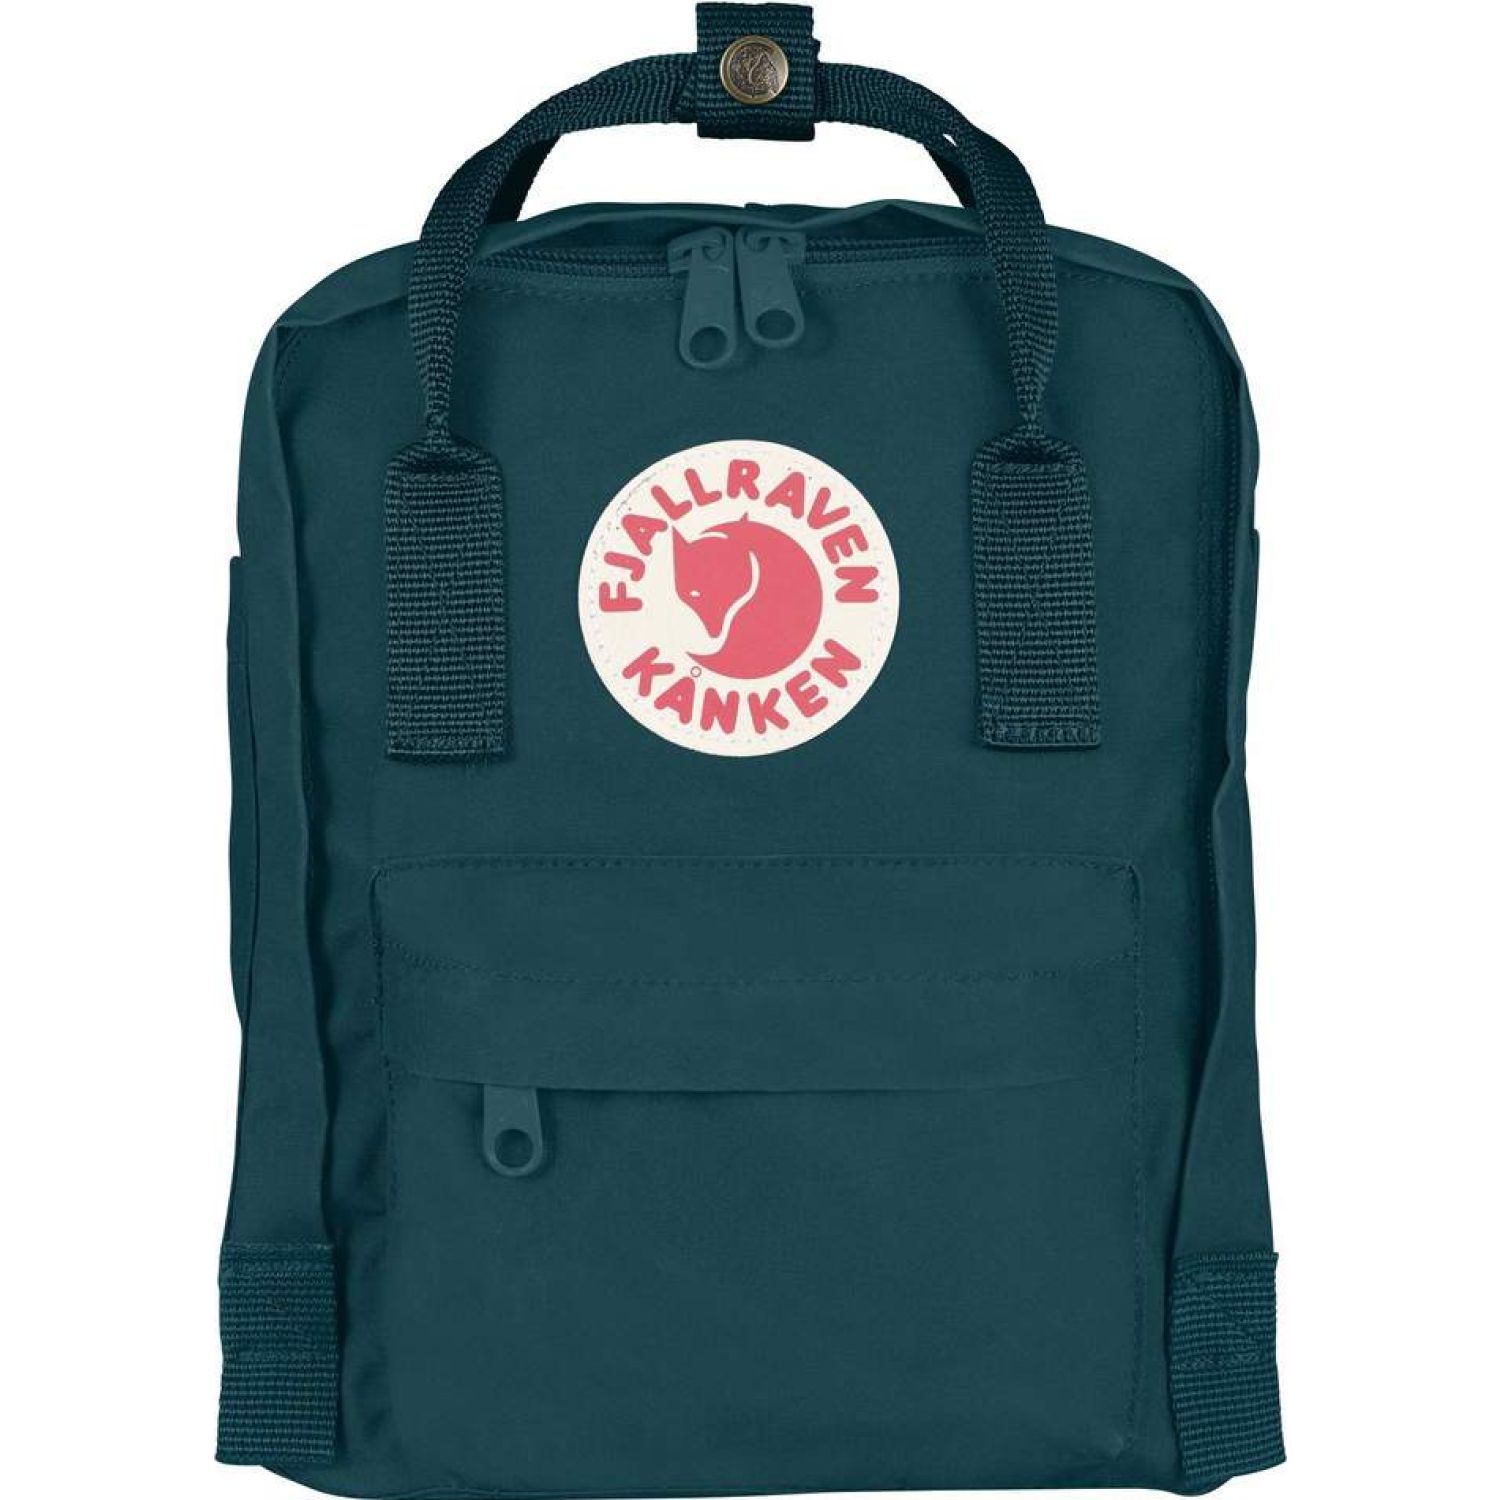 FJALLRAVEN Kanken Mini Turquesa Mochilas Multipropósitos